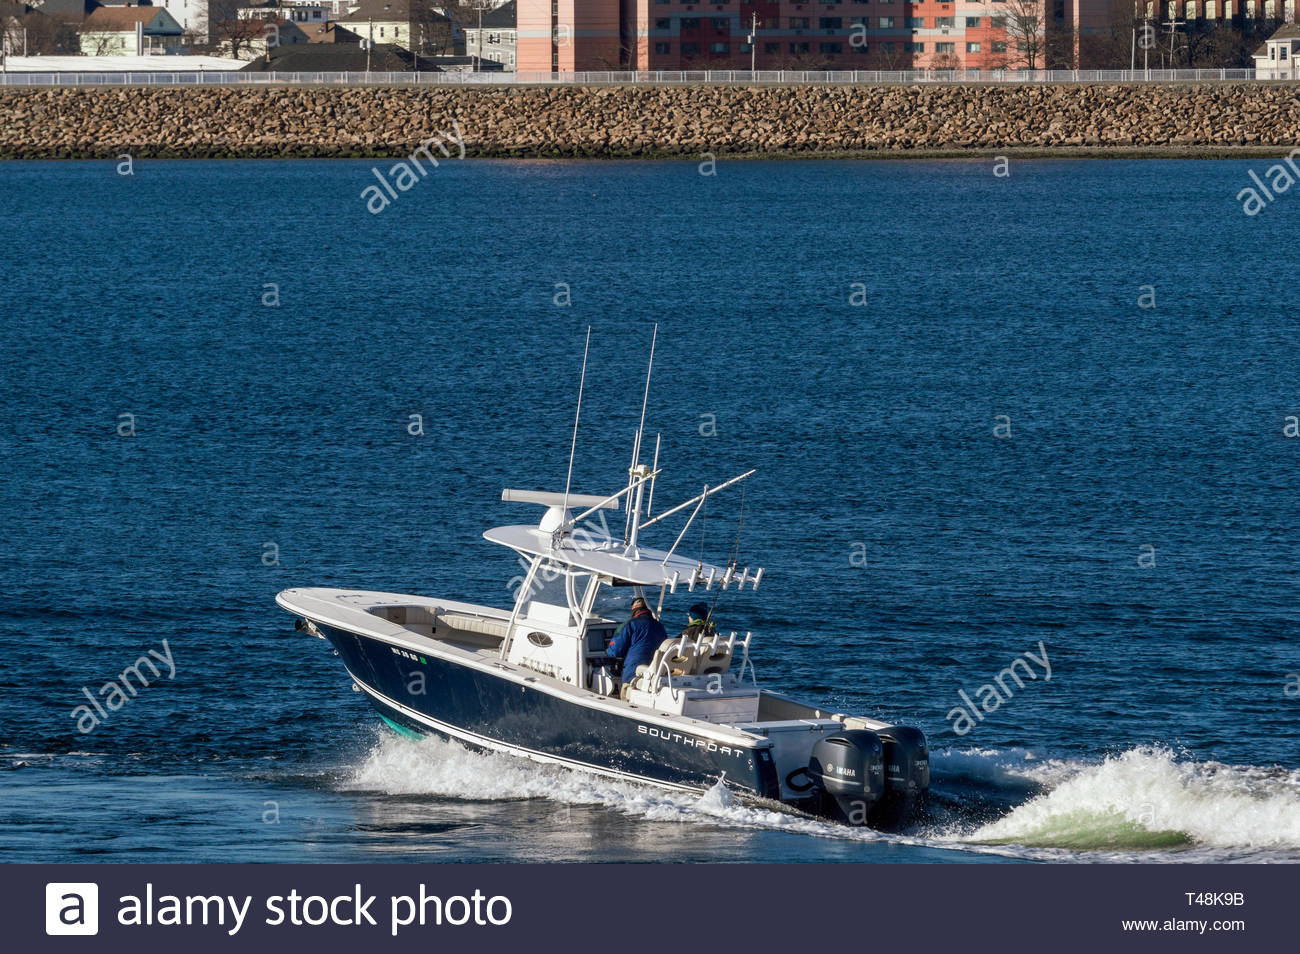 New Bedford, Massachusetts, USA - April 11, 2019: Center console boat with two outboard motors heading toward Buzzards Bay on chilly morning in early  - Stock Image